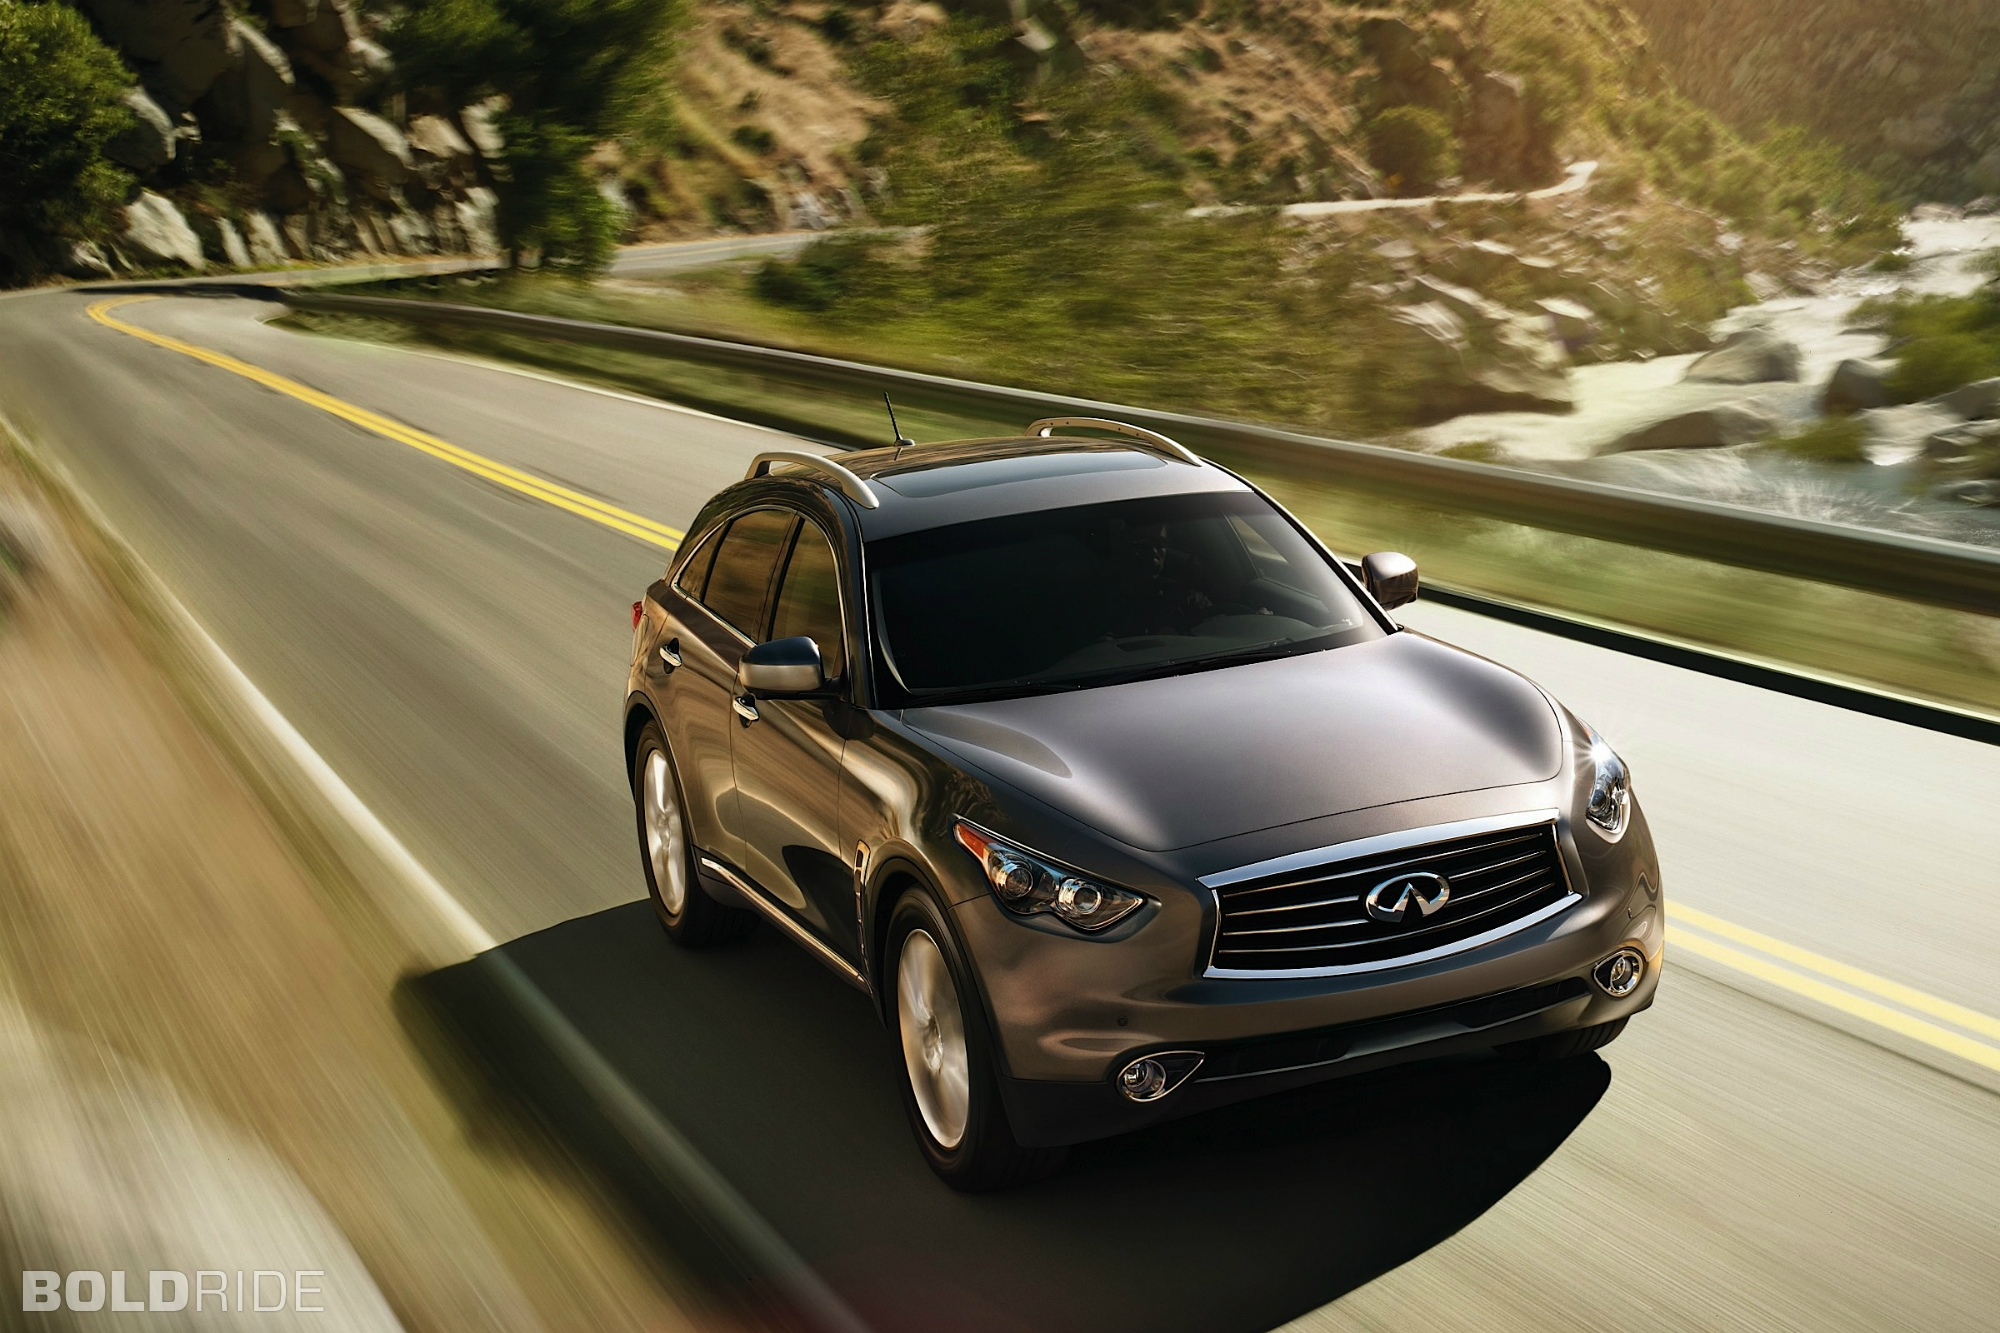 2012 infiniti fx image collections hd cars wallpaper 2012 infiniti fx image 10 vanachro image collections vanachro Gallery